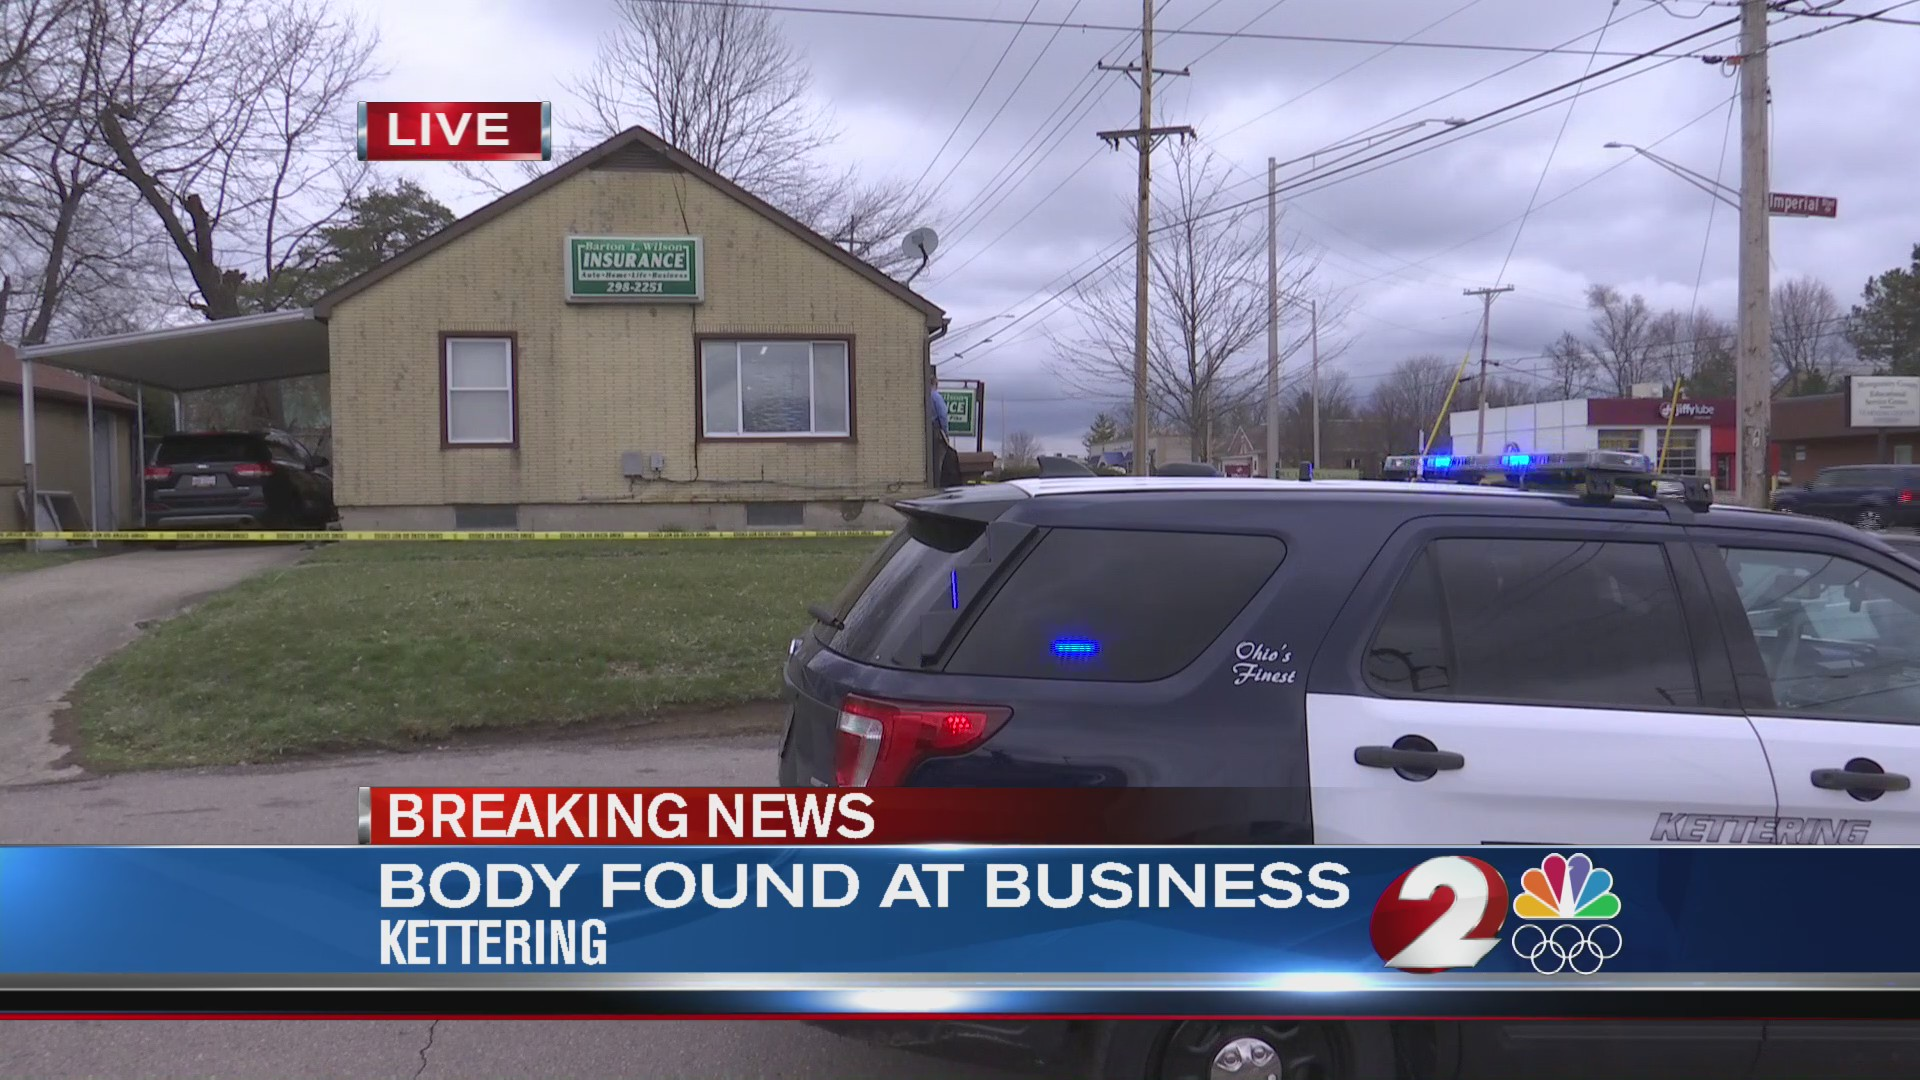 Body found at business